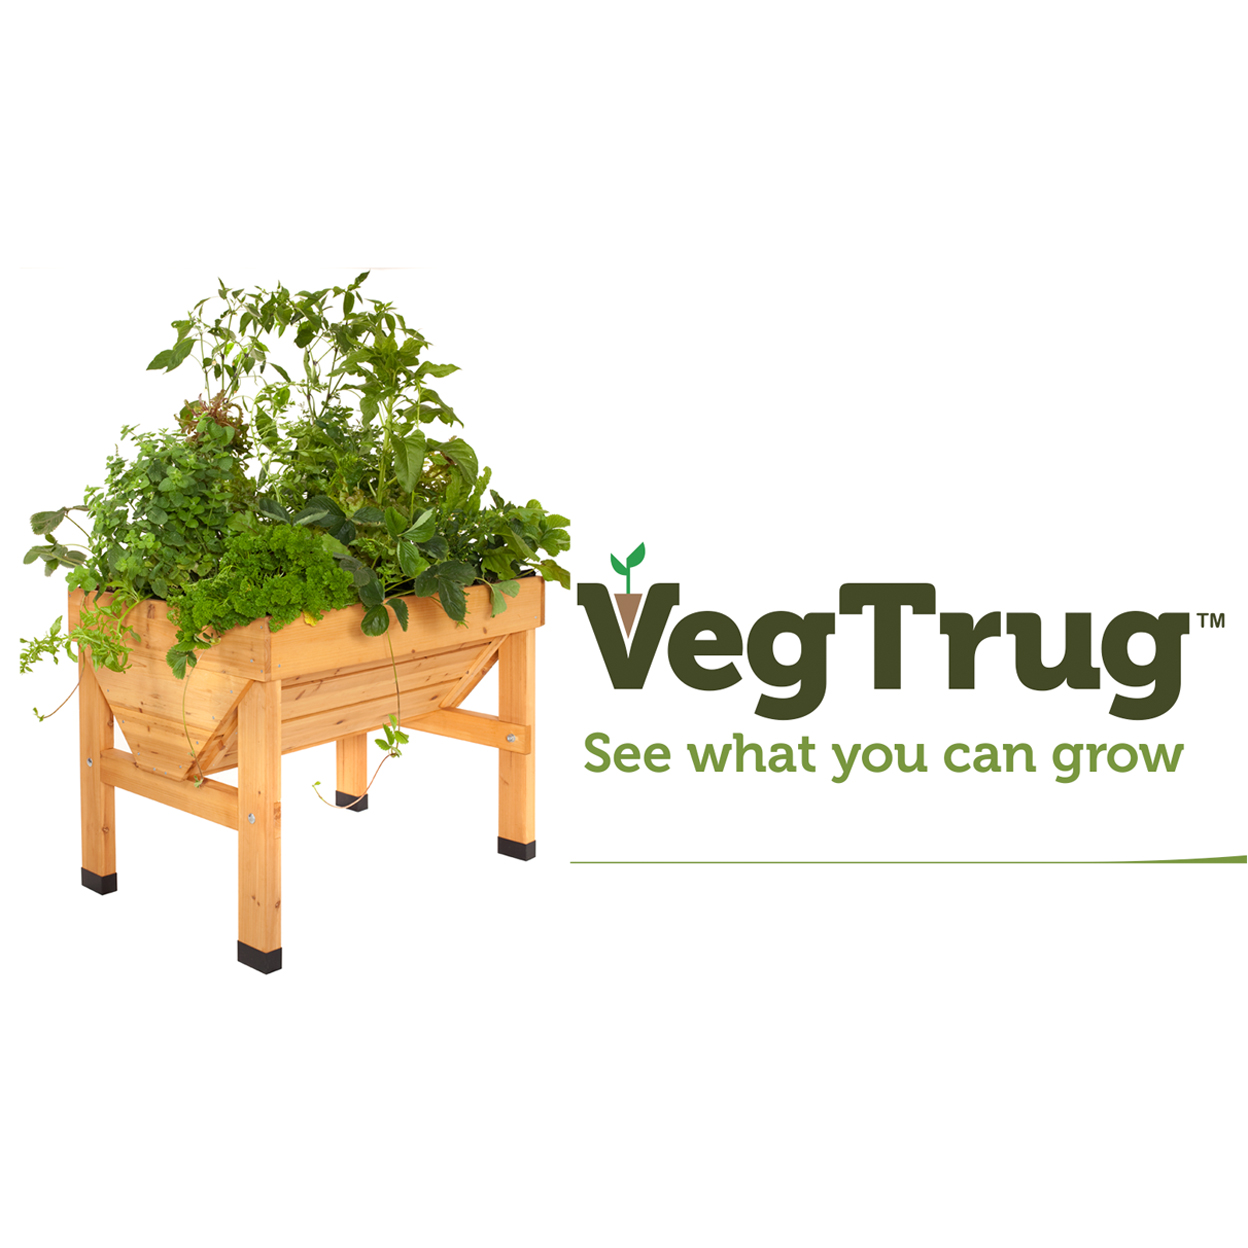 MIXED PALLET OF SMALL & MEDIUM VEGTRUGS (8 Sm. & 6 Med.)